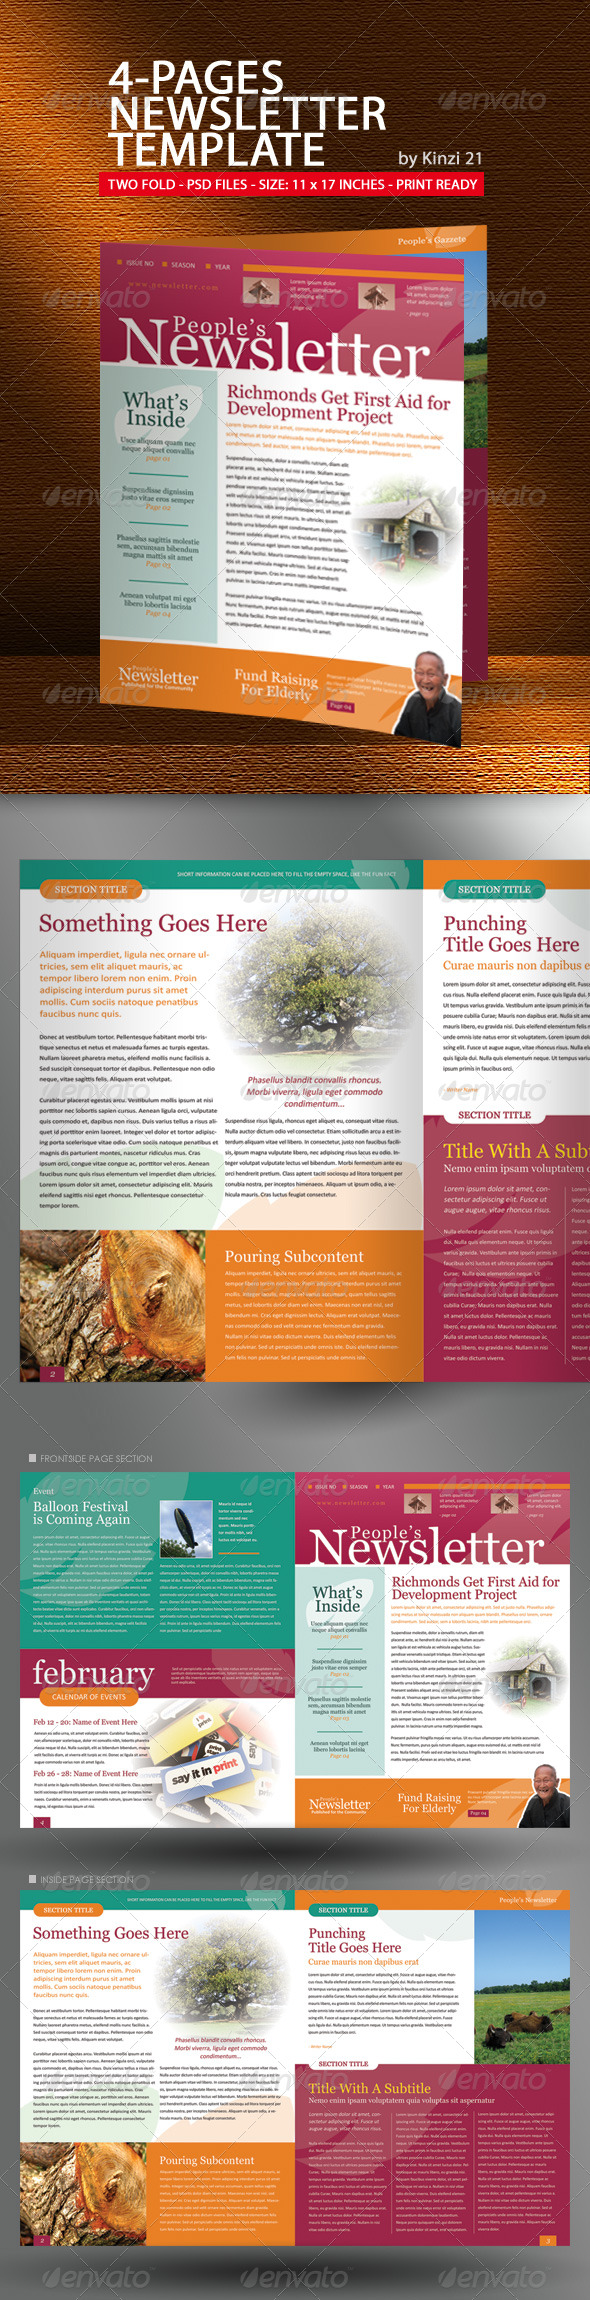 4-Pages Newsletter Template - Newsletters Print Templates